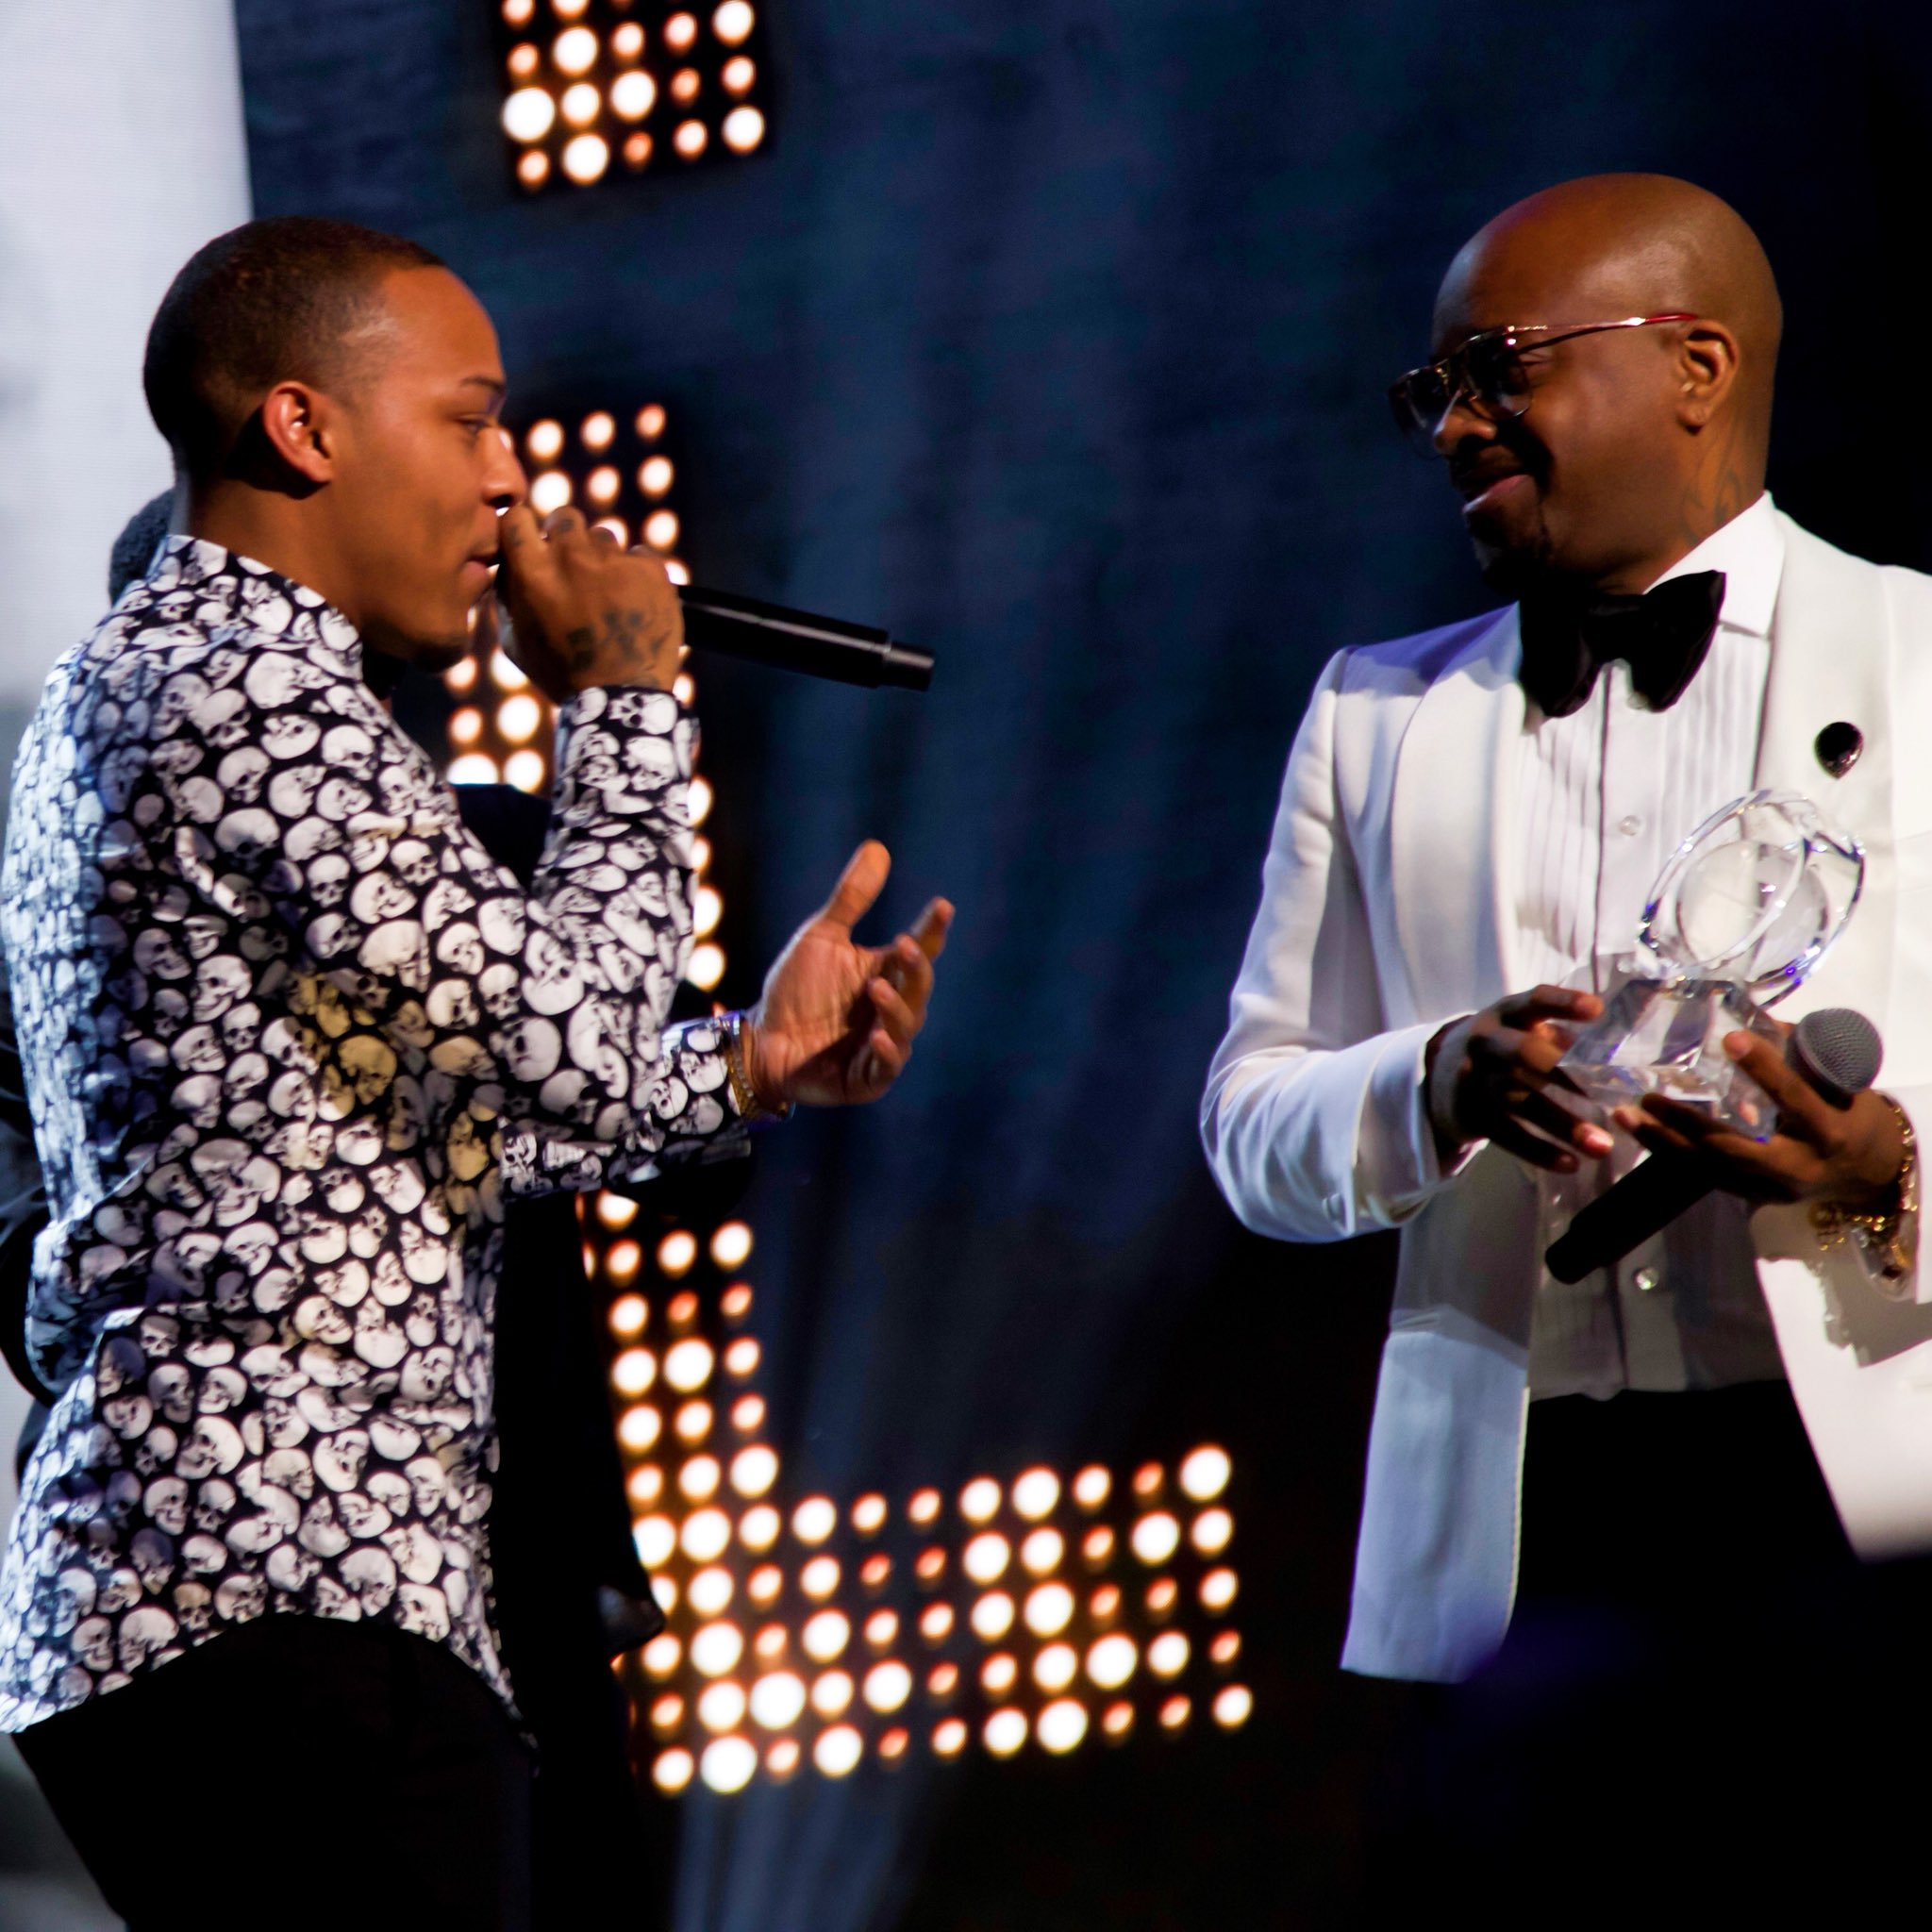 """Presented my pops @jermainedupri his """"Breaking Barriers Award"""" at the @GlobalSpinAward TUNE IN Feb 22 on @RevoltTV https://t.co/1KvuKPNjbG"""